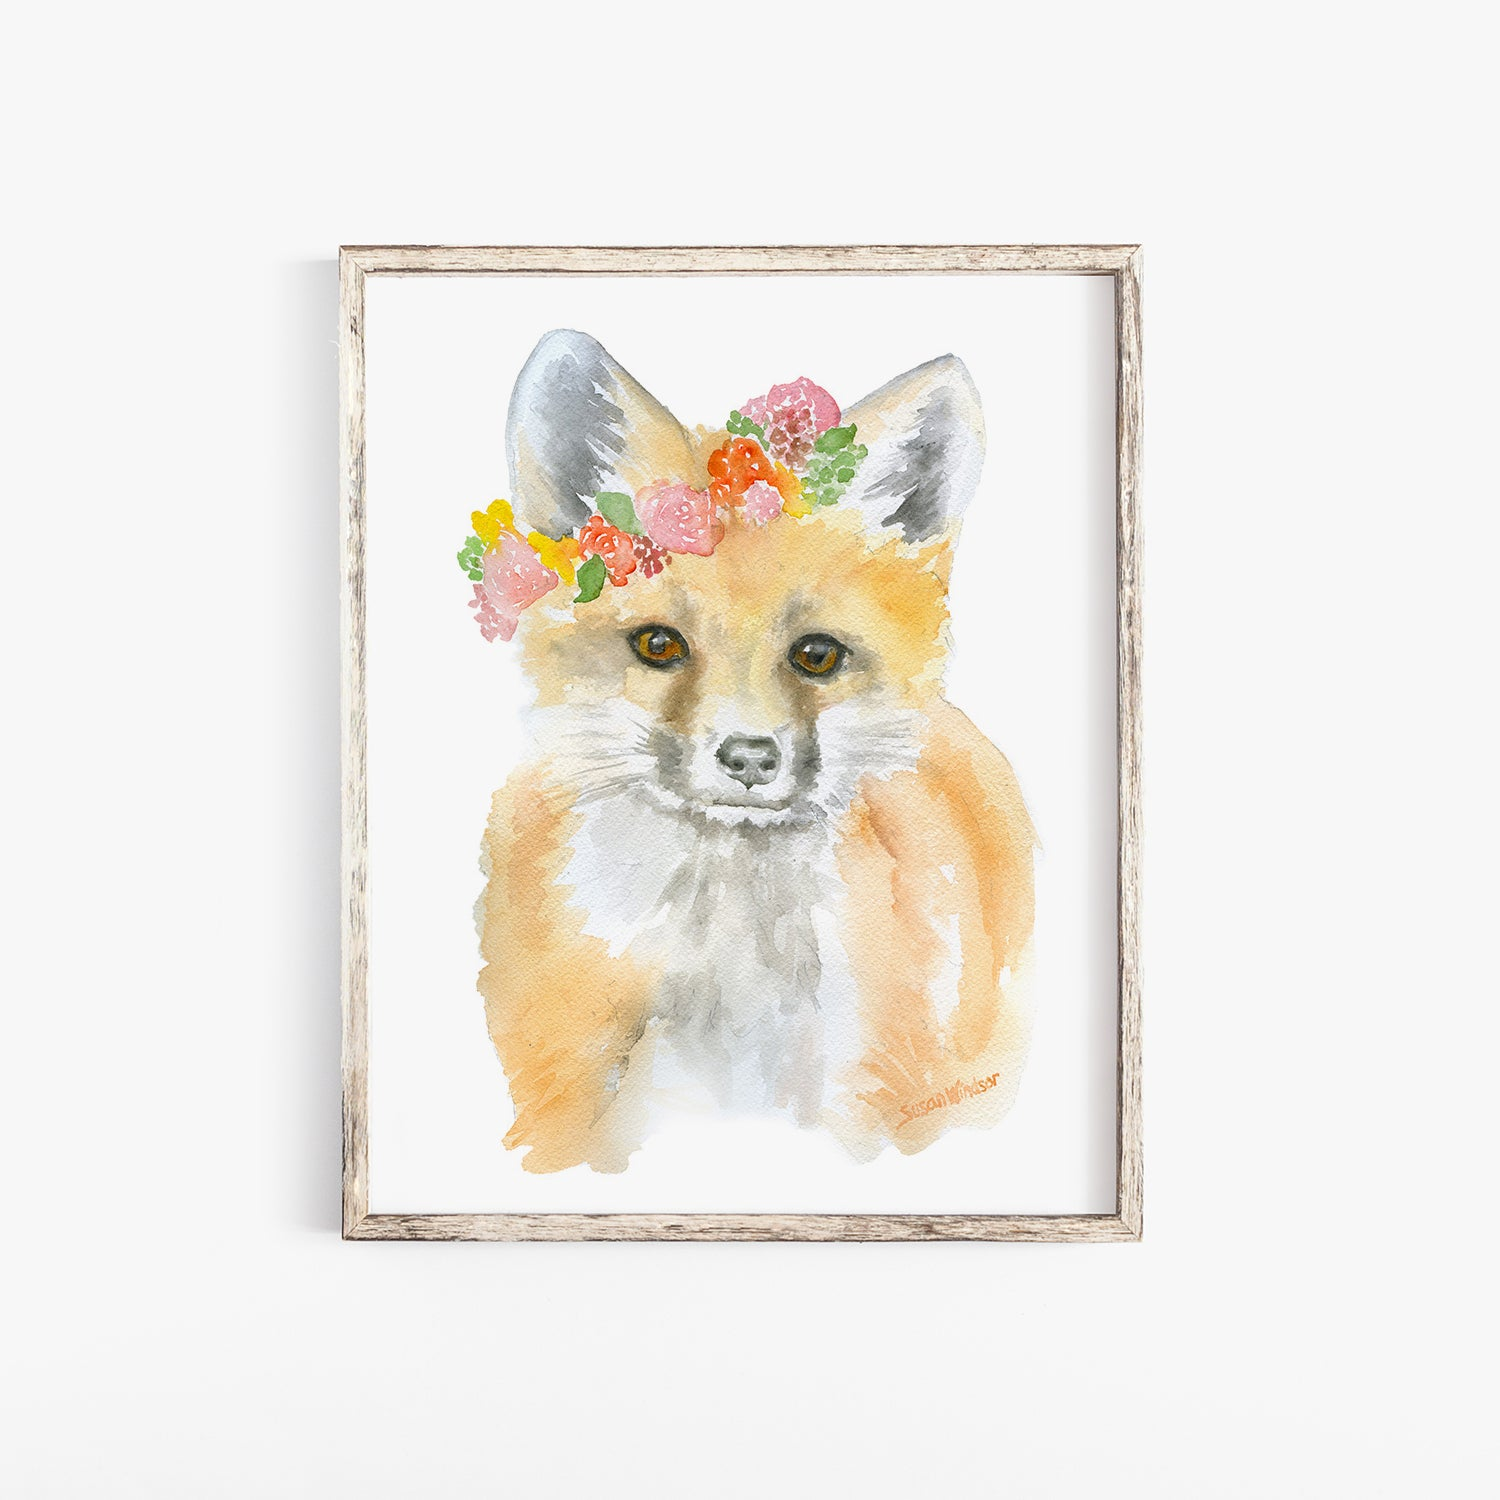 Woodland Animal Floral Art Print Set of 3 Animals - Deer, Bunny, and Fox